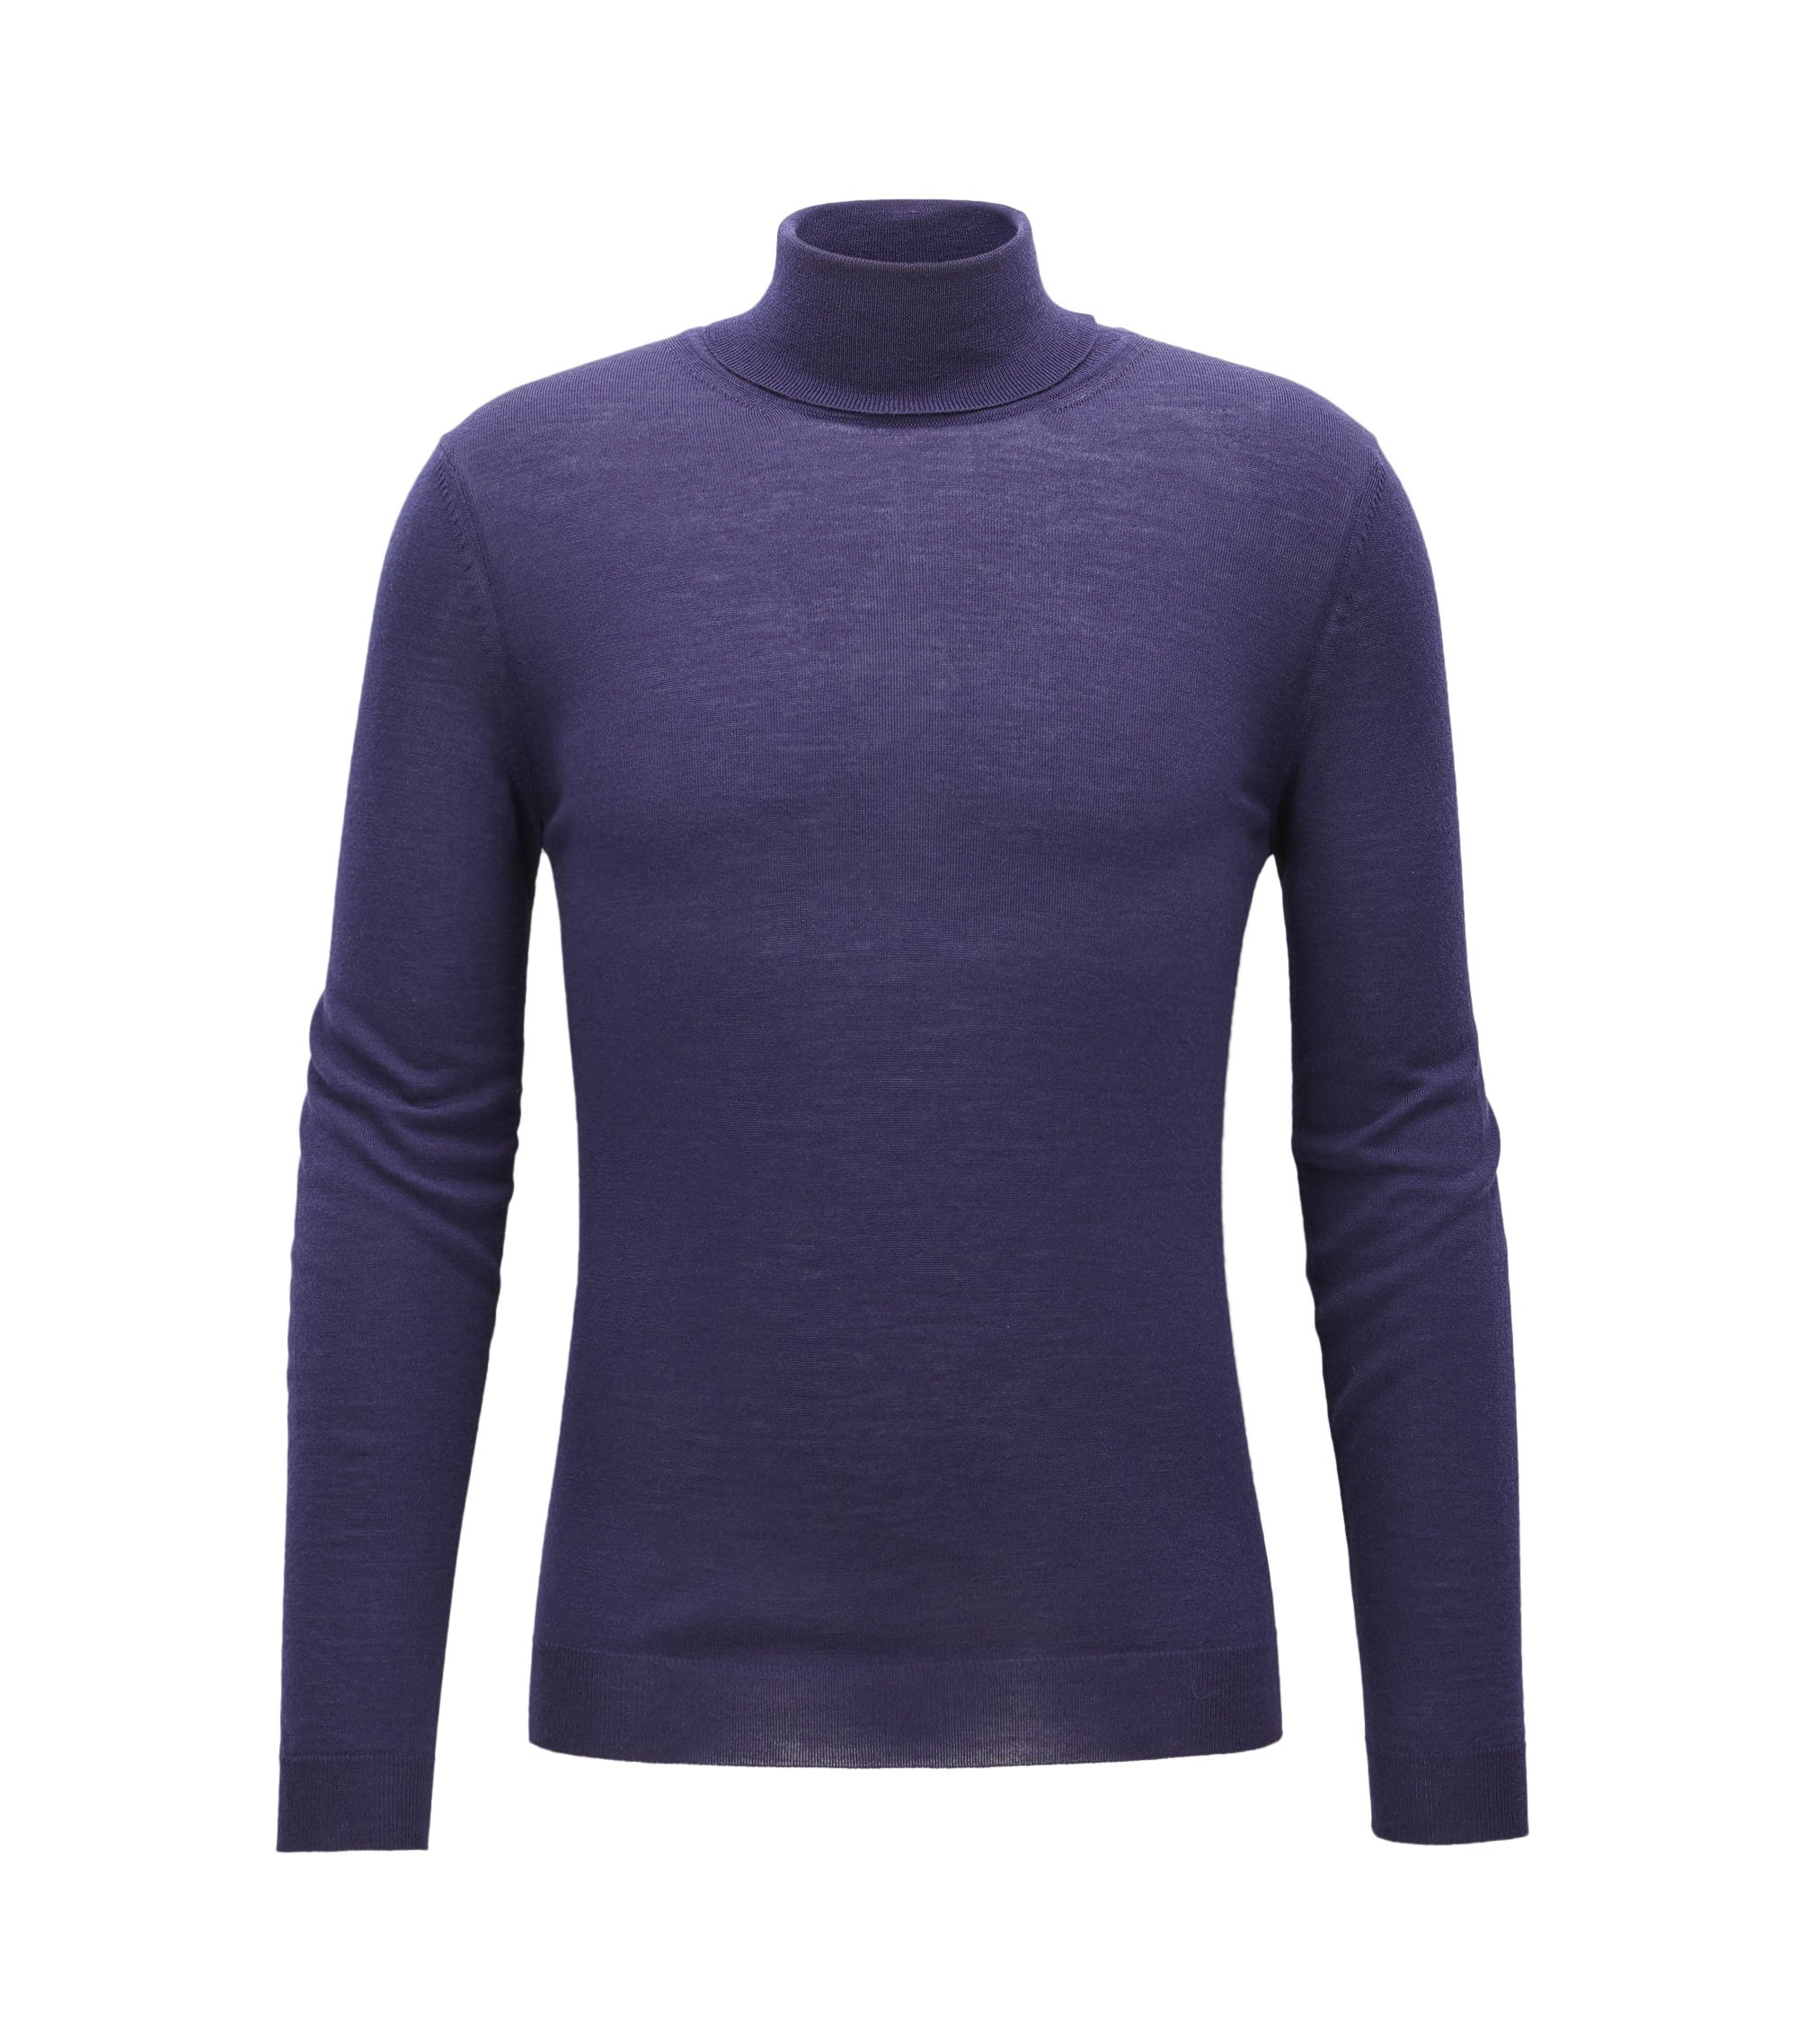 Maglione slim fit in lana con colletto a tartaruga, Viola scuro